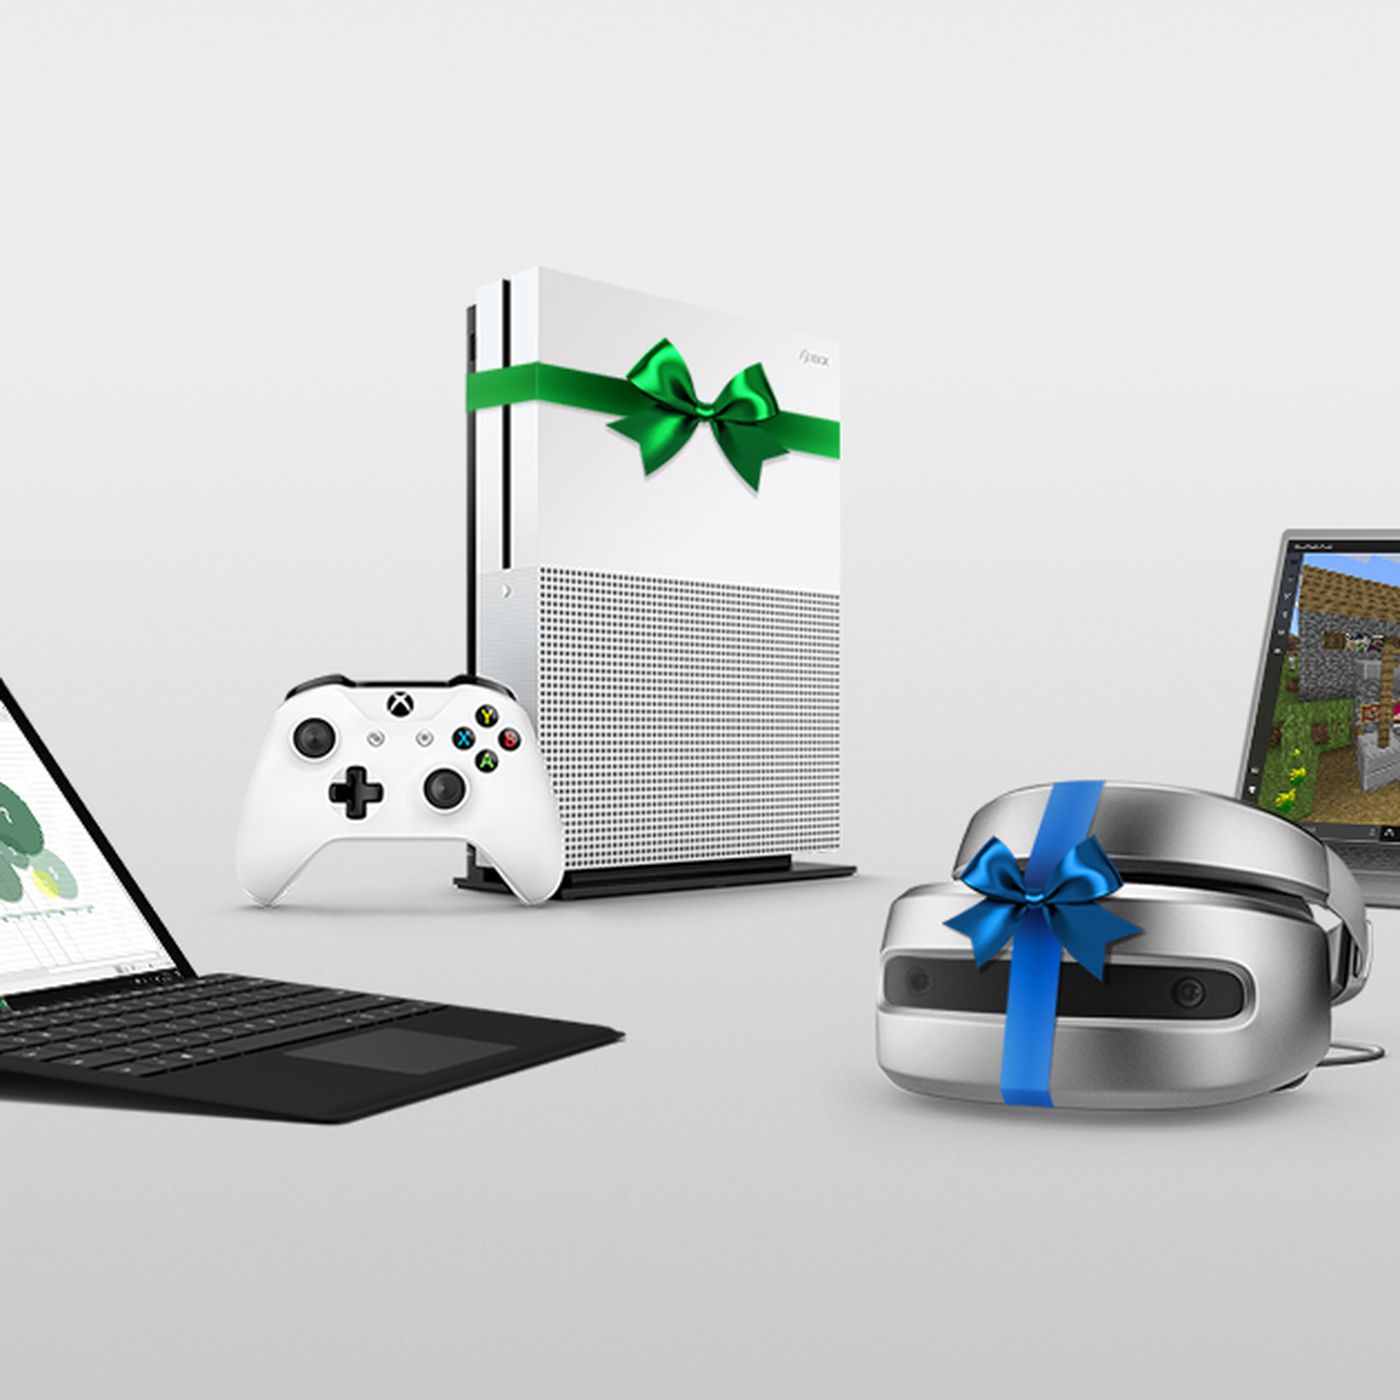 Deals Include The Est Xbox One S